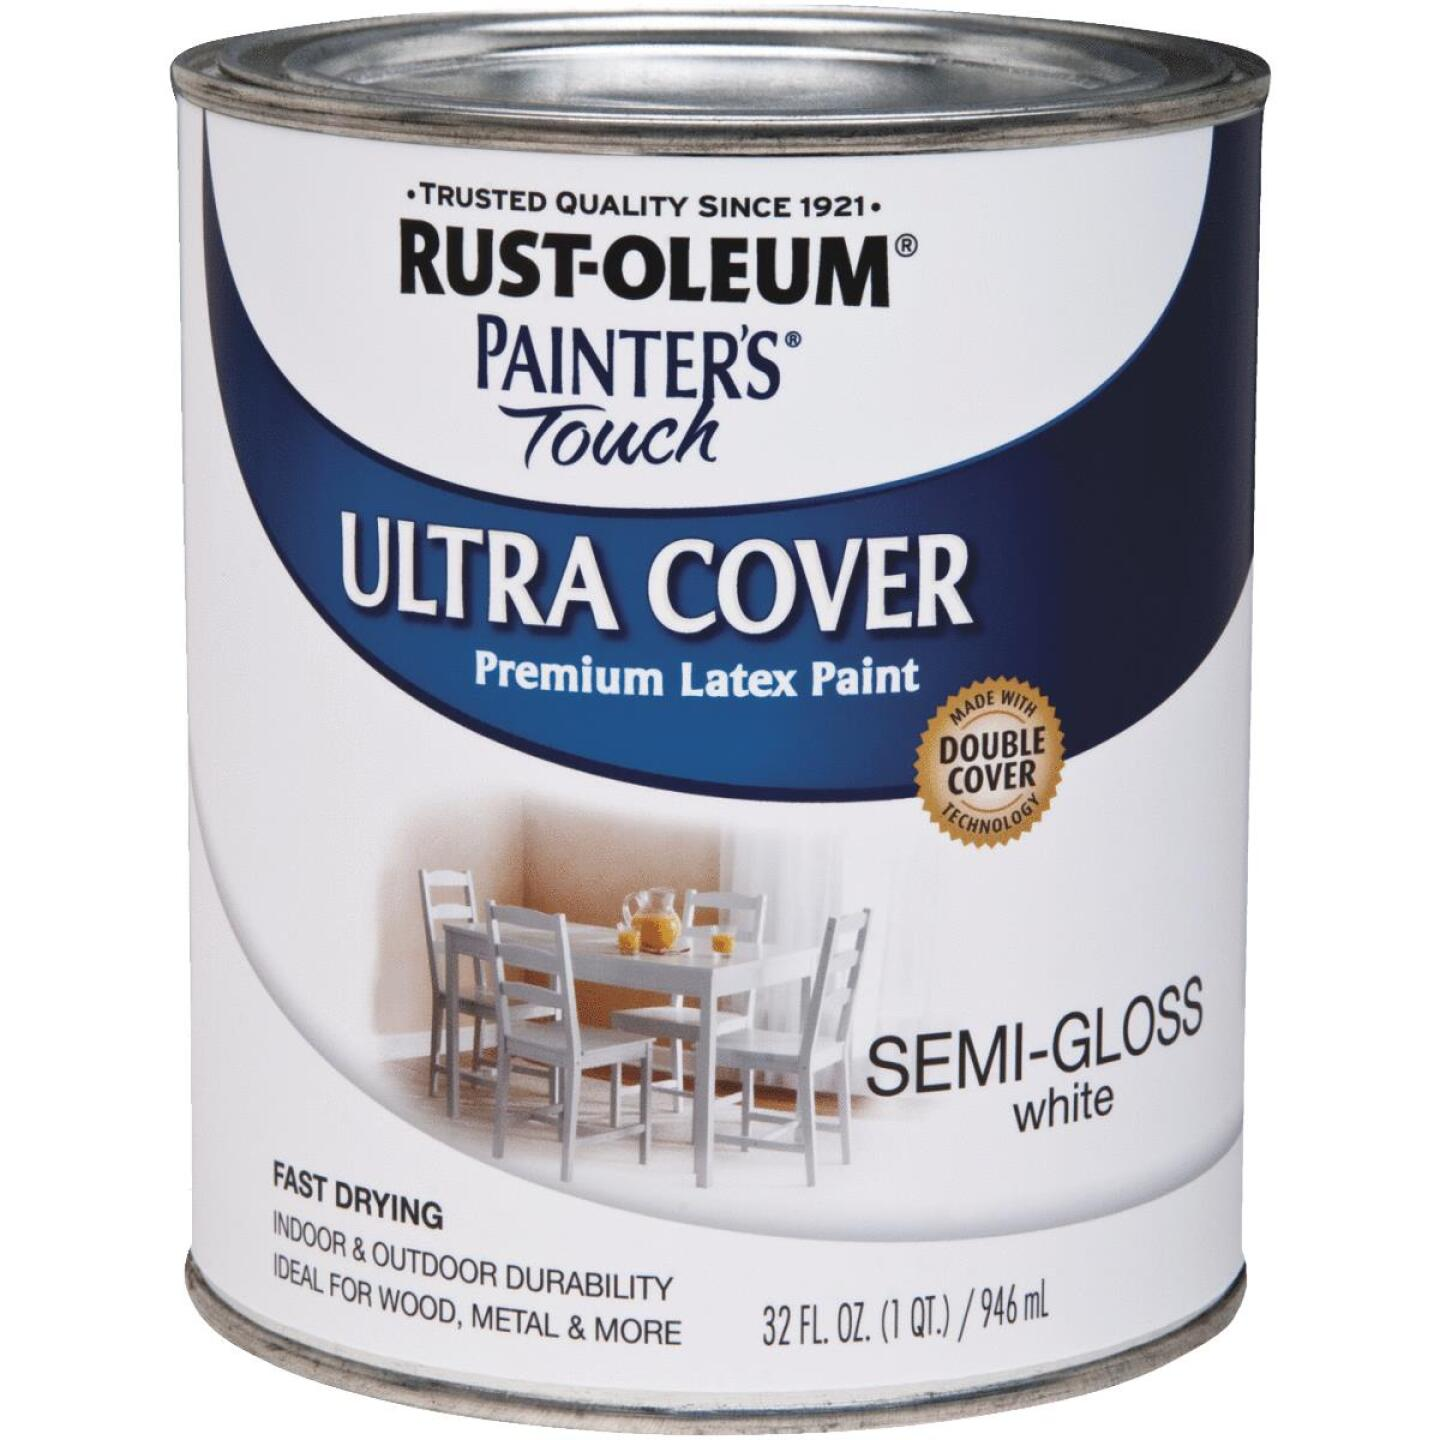 Rust-Oleum Painter's Touch 2X Ultra Cover Premium Latex Paint, White Semi-Gloss, 1 Qt. Image 1